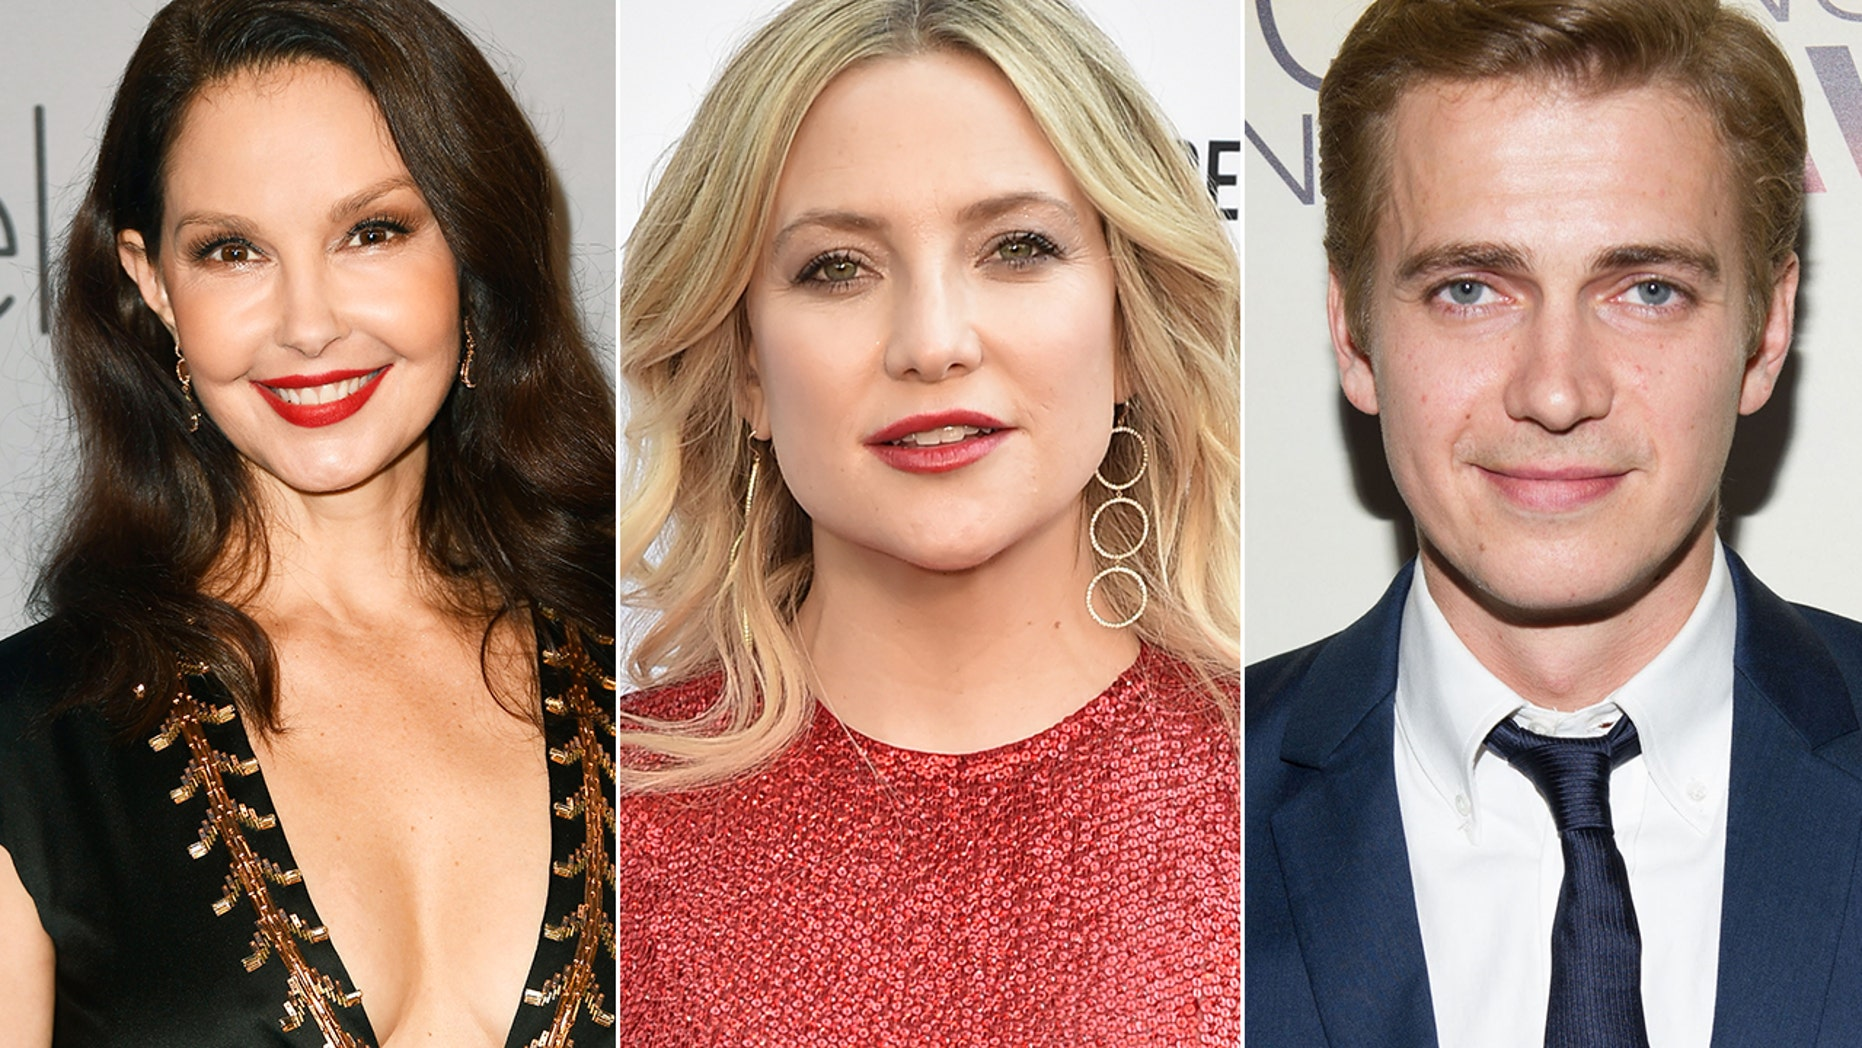 From l-r: Ashley Judd, Kate Hudson and Hayden Christensen all celebrate their birthday on April 19.